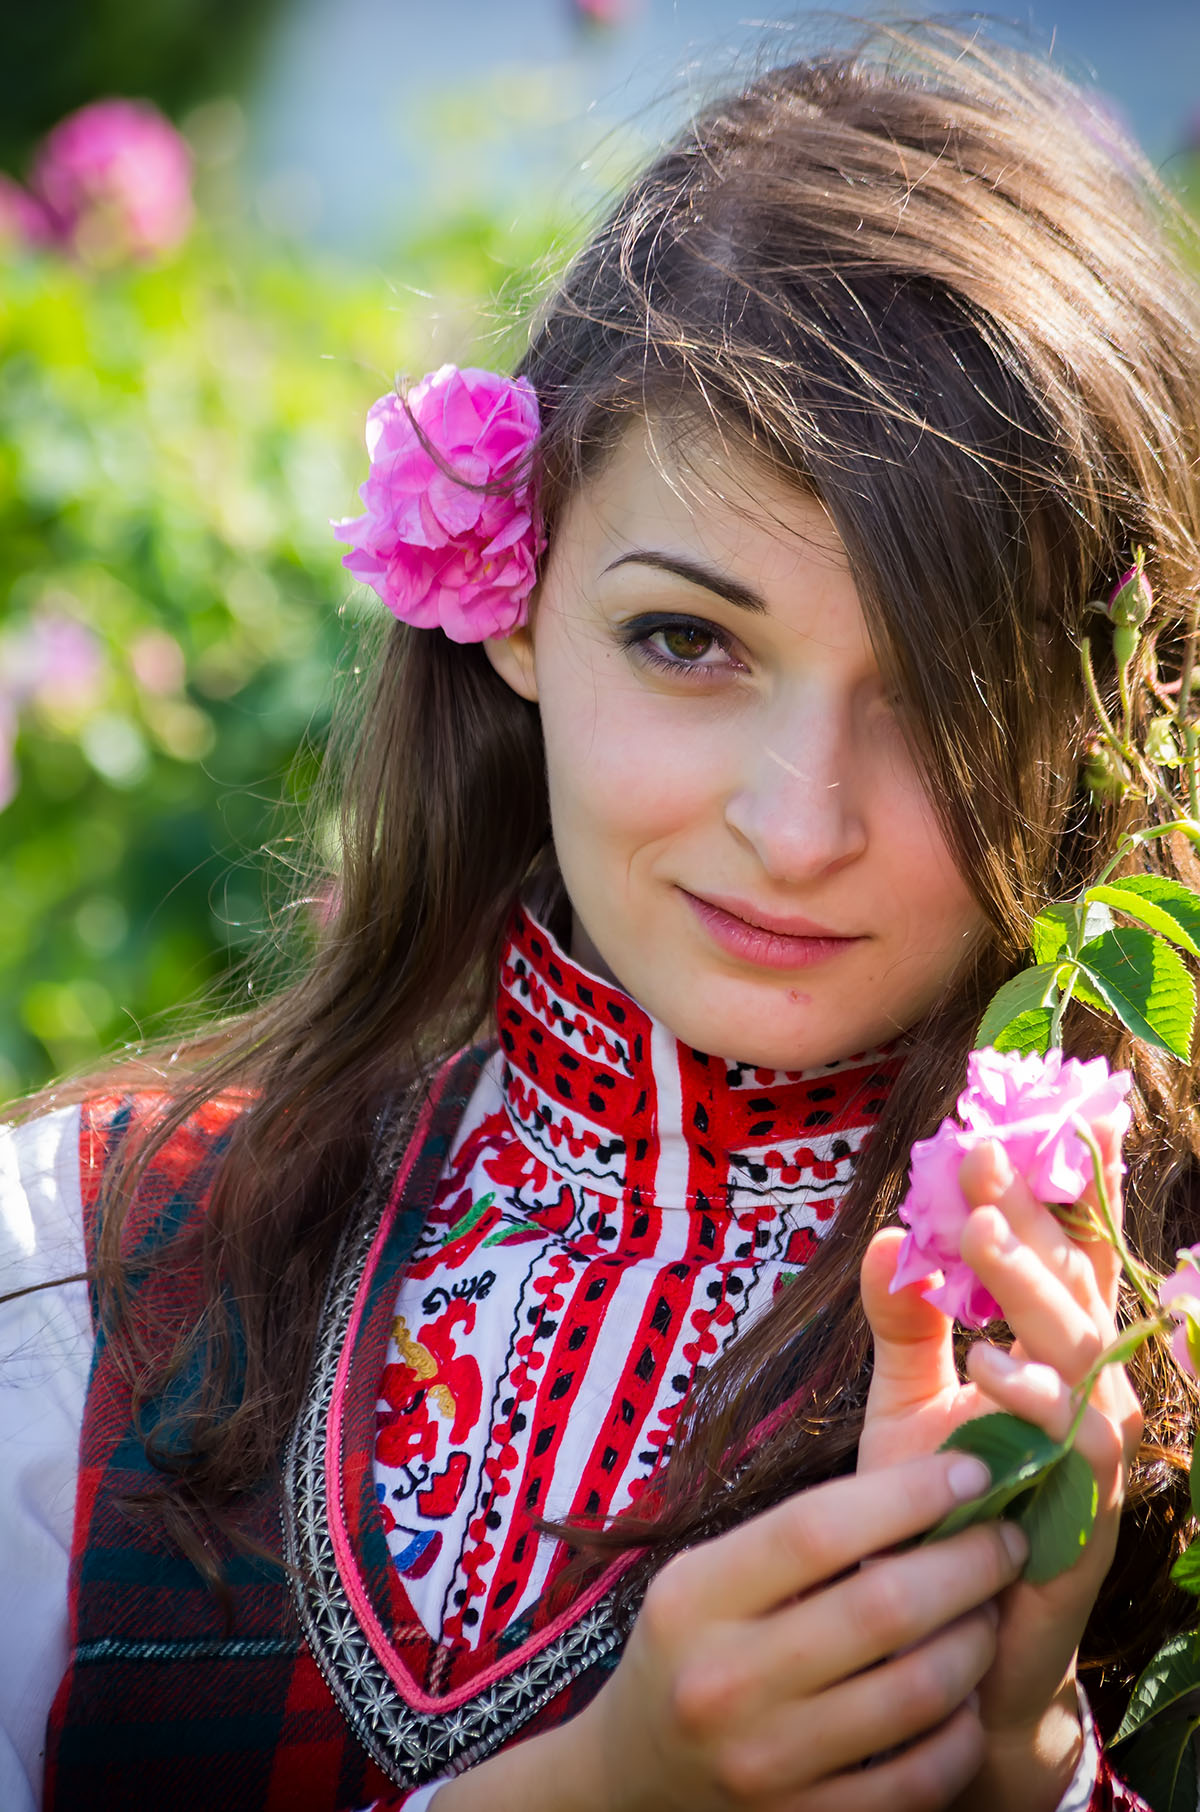 Is there any real women in bulgaria